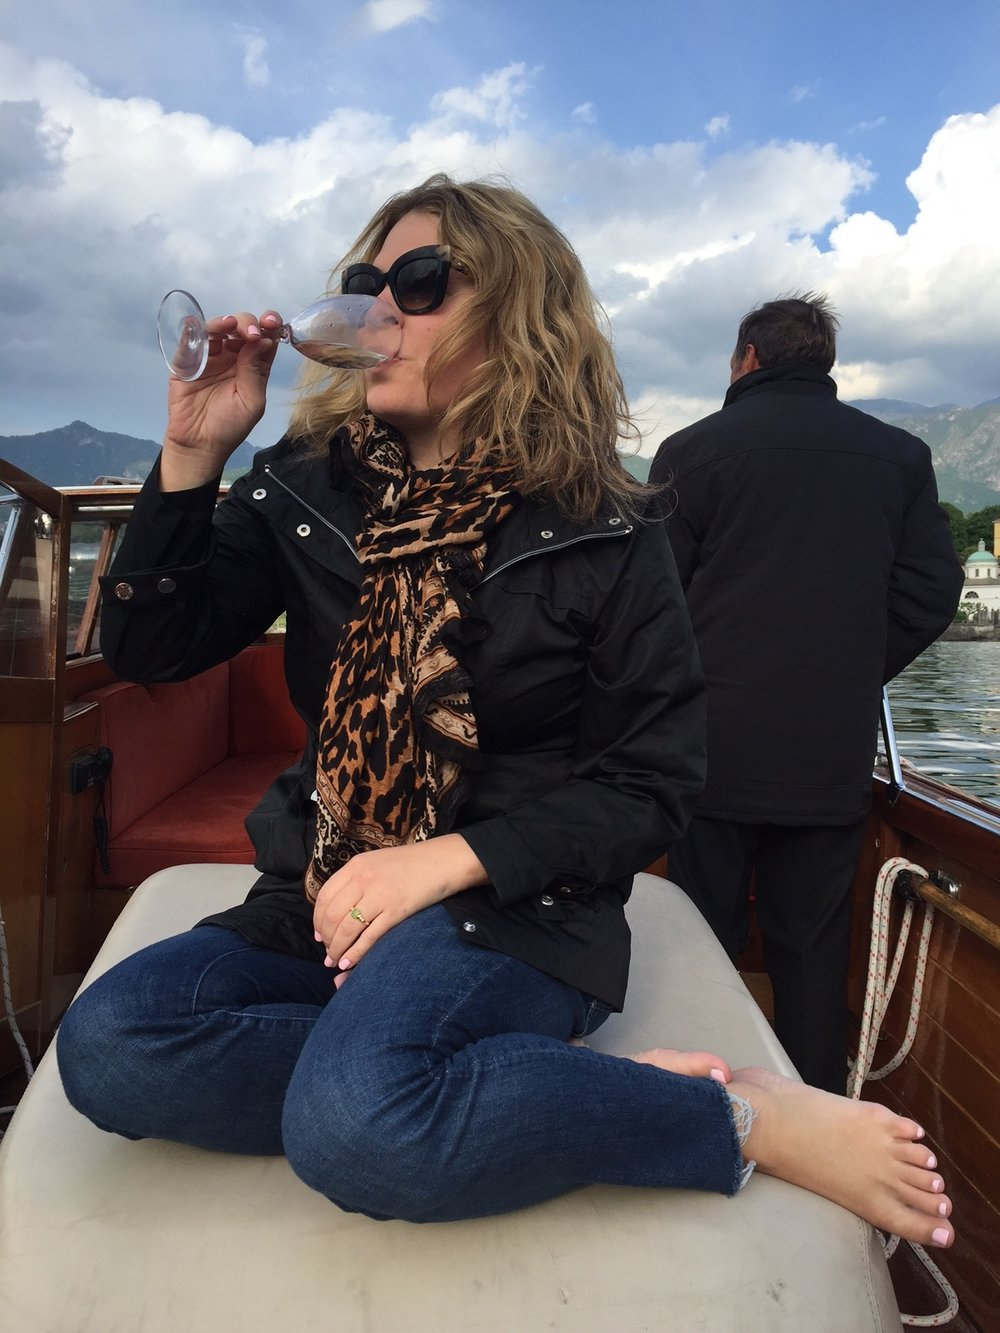 One of my all-time favorite trips in May 2016: staying at the Grand Hotel Tremezzo in Lake Como, Italy. Totally obnoxious champagne on boat shot. But what a day!